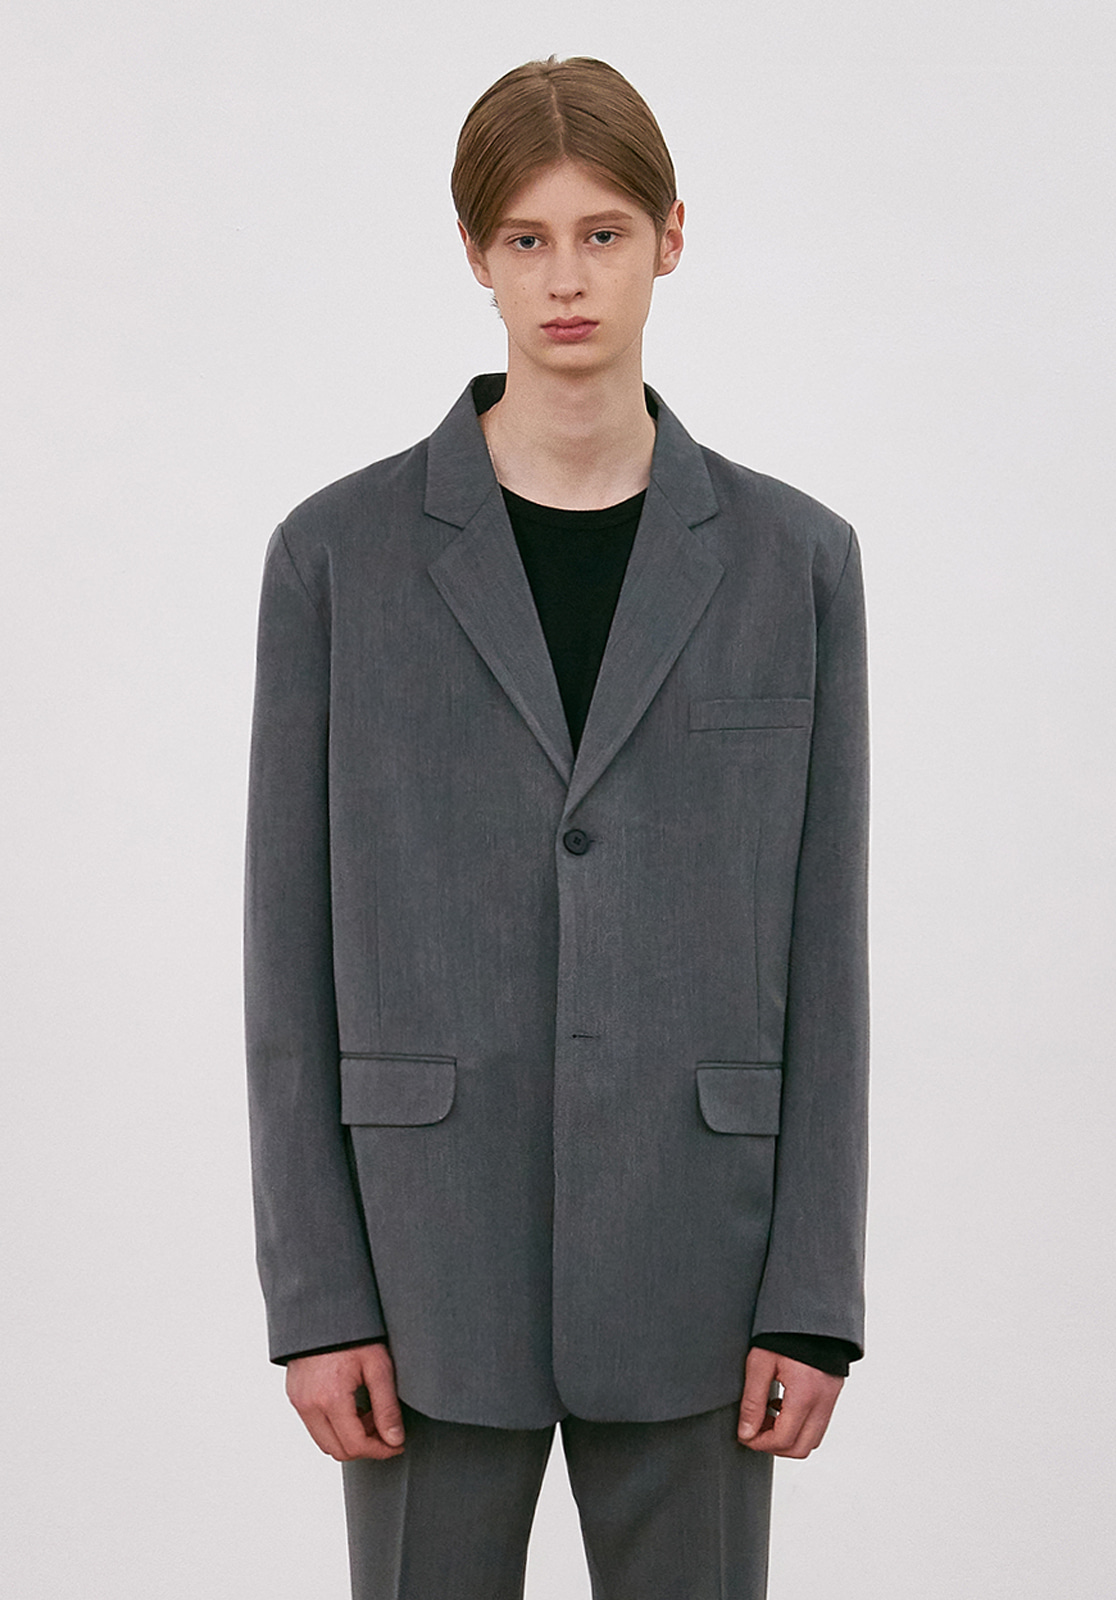 V656 PROUD SINGLE JACKET  GRAY